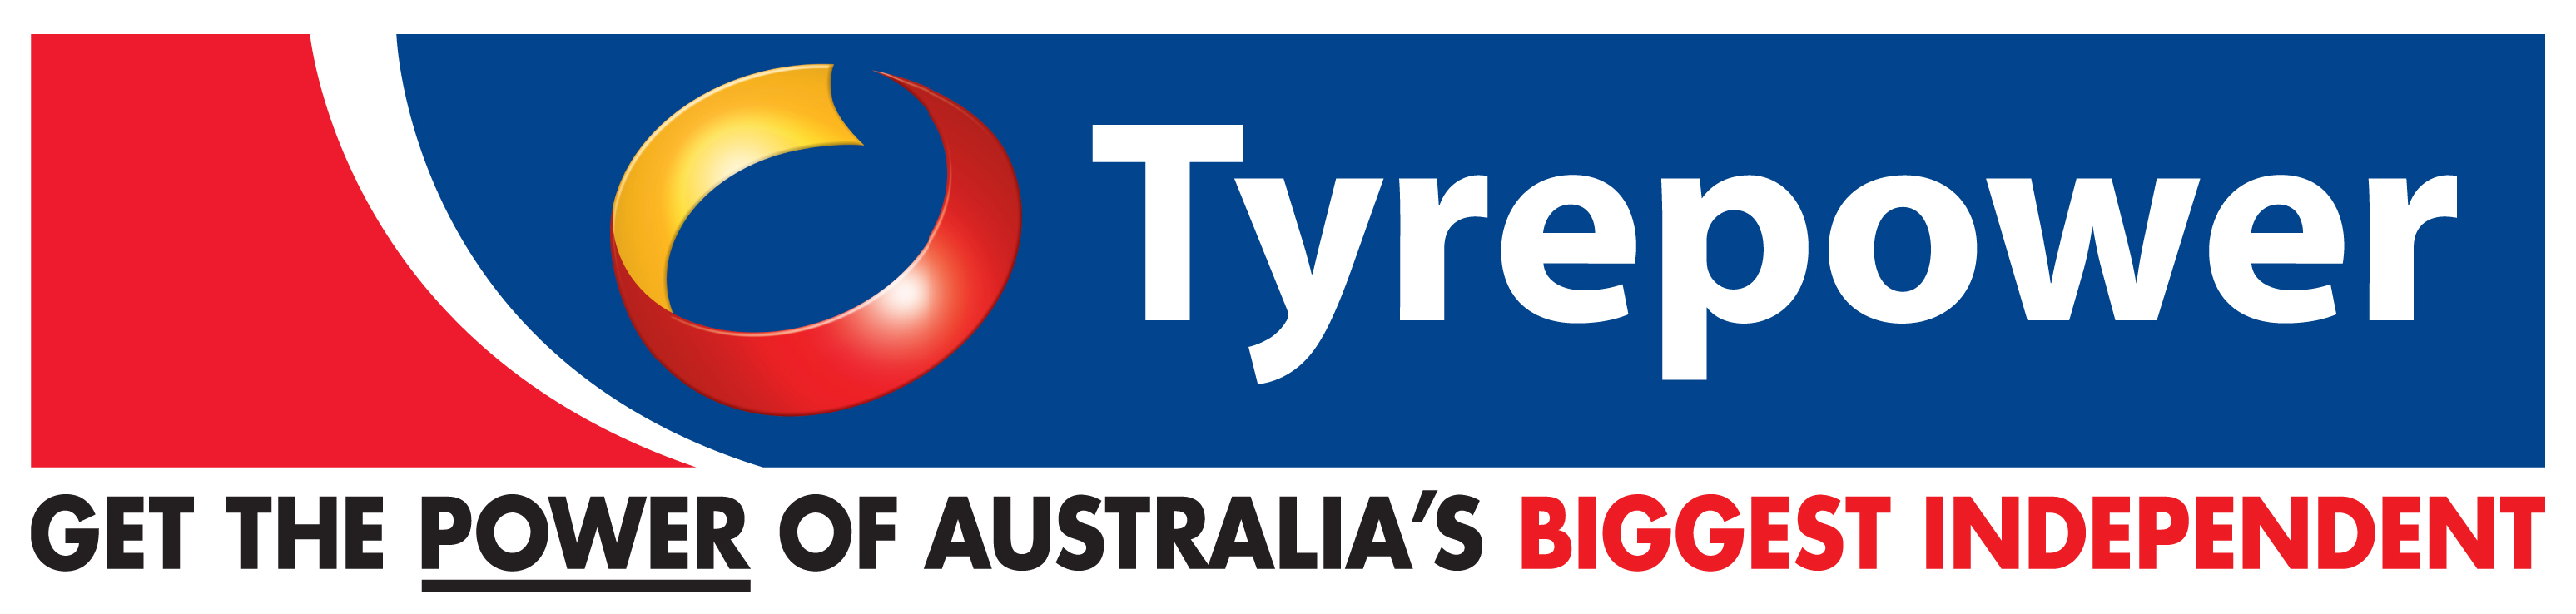 Alice City Tyrepower - Alice Springs, NT 0870 - (08) 8955 5677 | ShowMeLocal.com